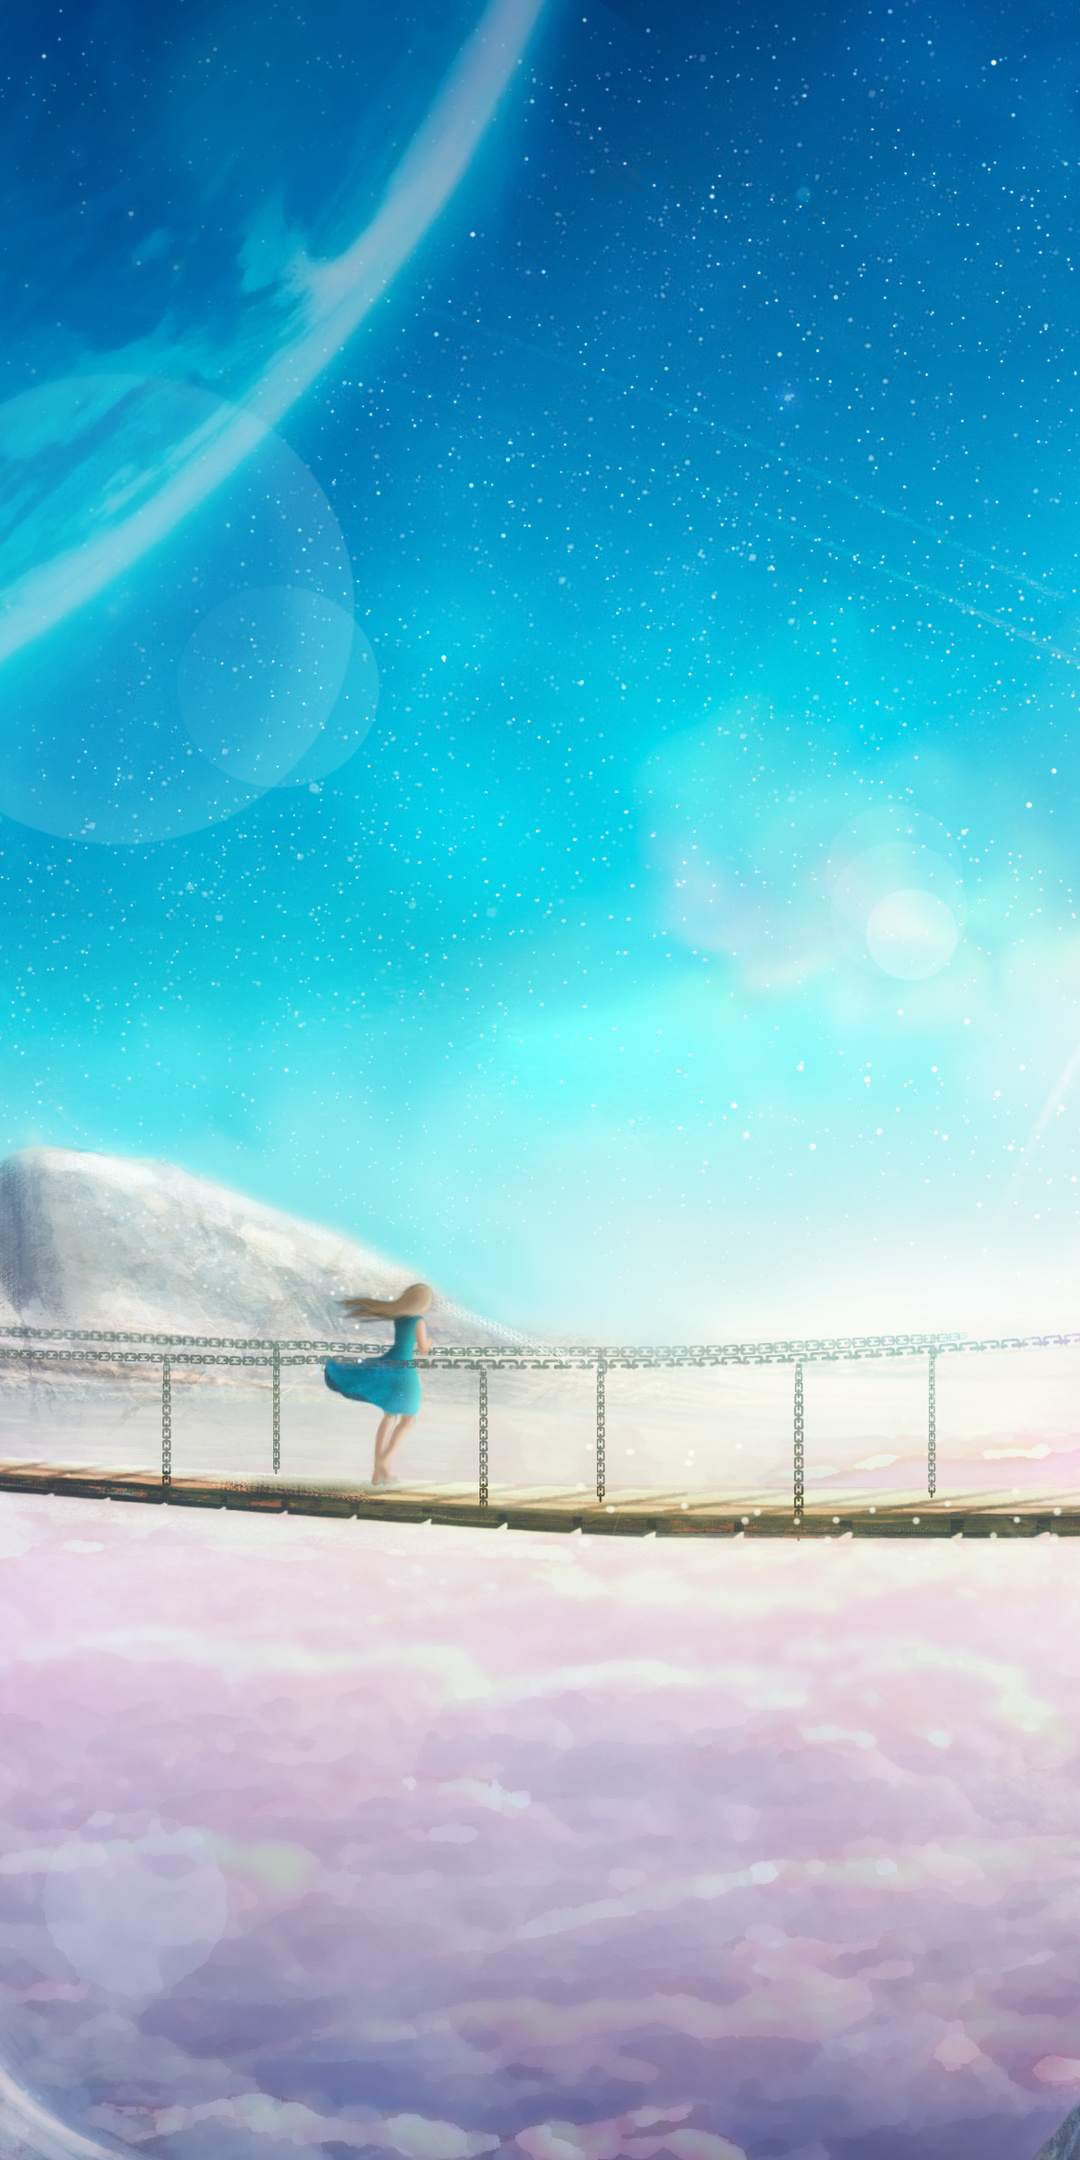 1080x2160 Supernova Anime Landscape One Plus 5t Honor 7x Honor View 10 Lg Q6 Hd 4k Wallpapers Images Backgrounds Photos And Pictures